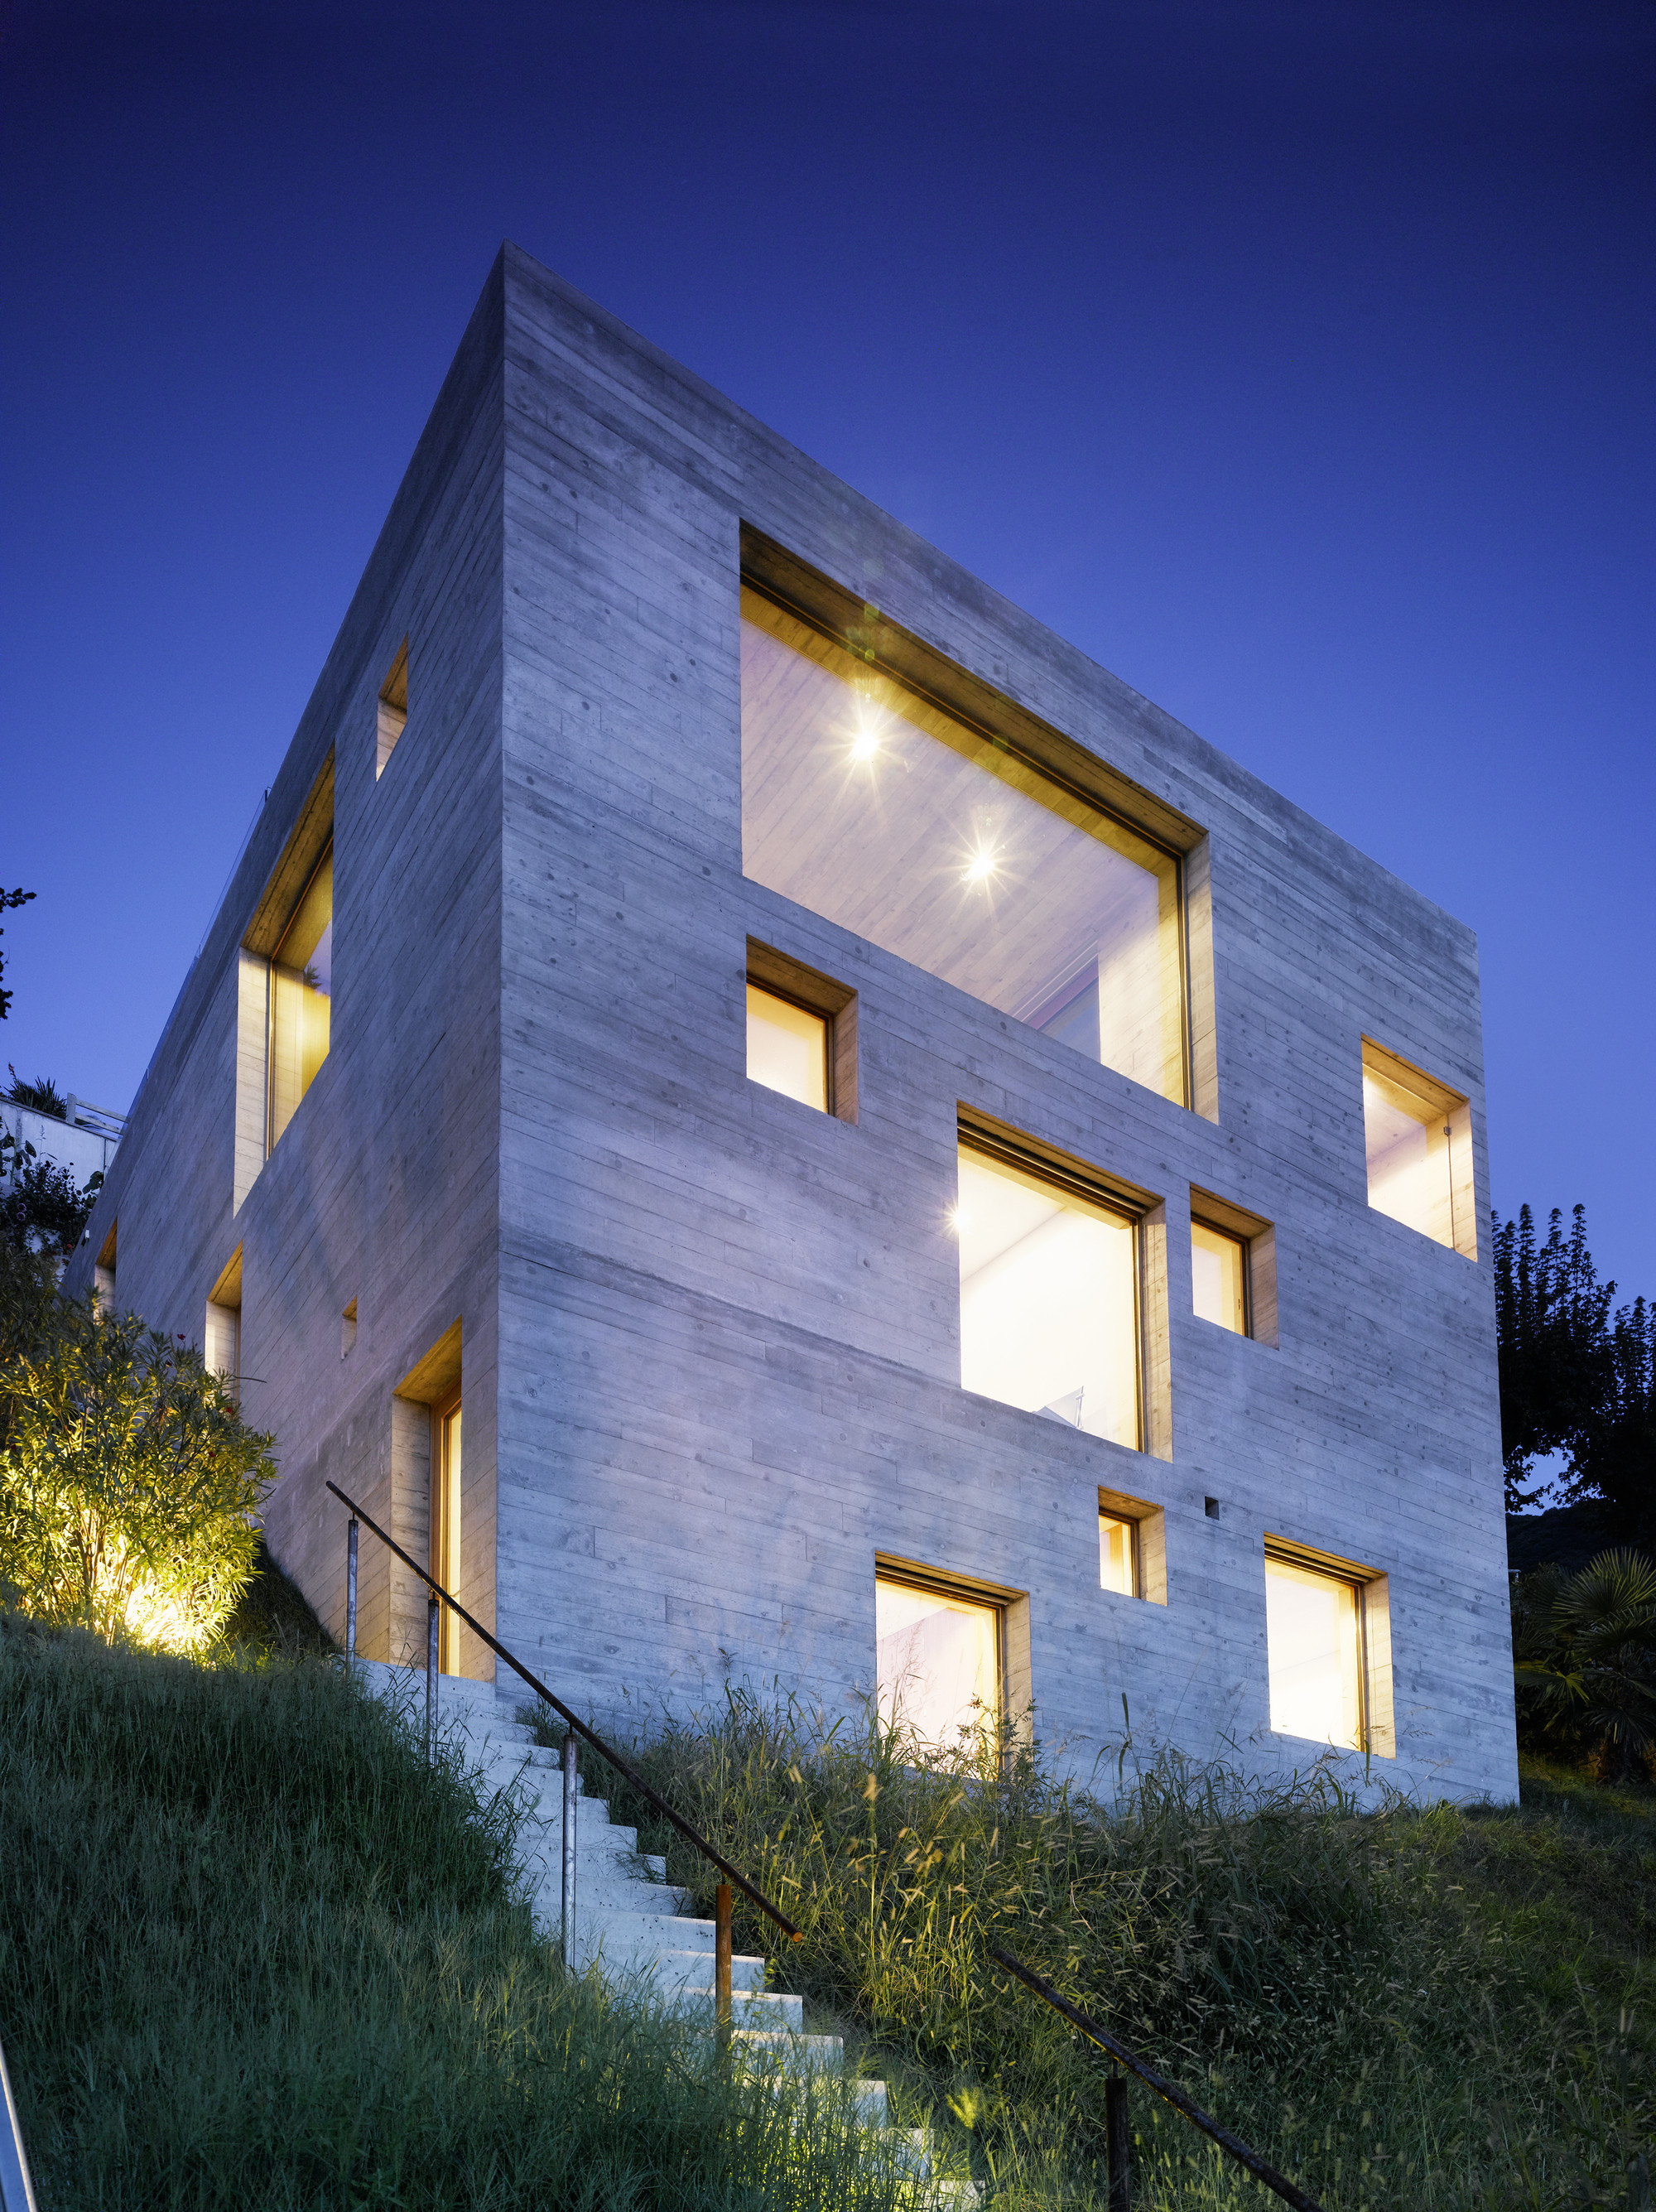 gallery of new concrete house wespi de meuron 8